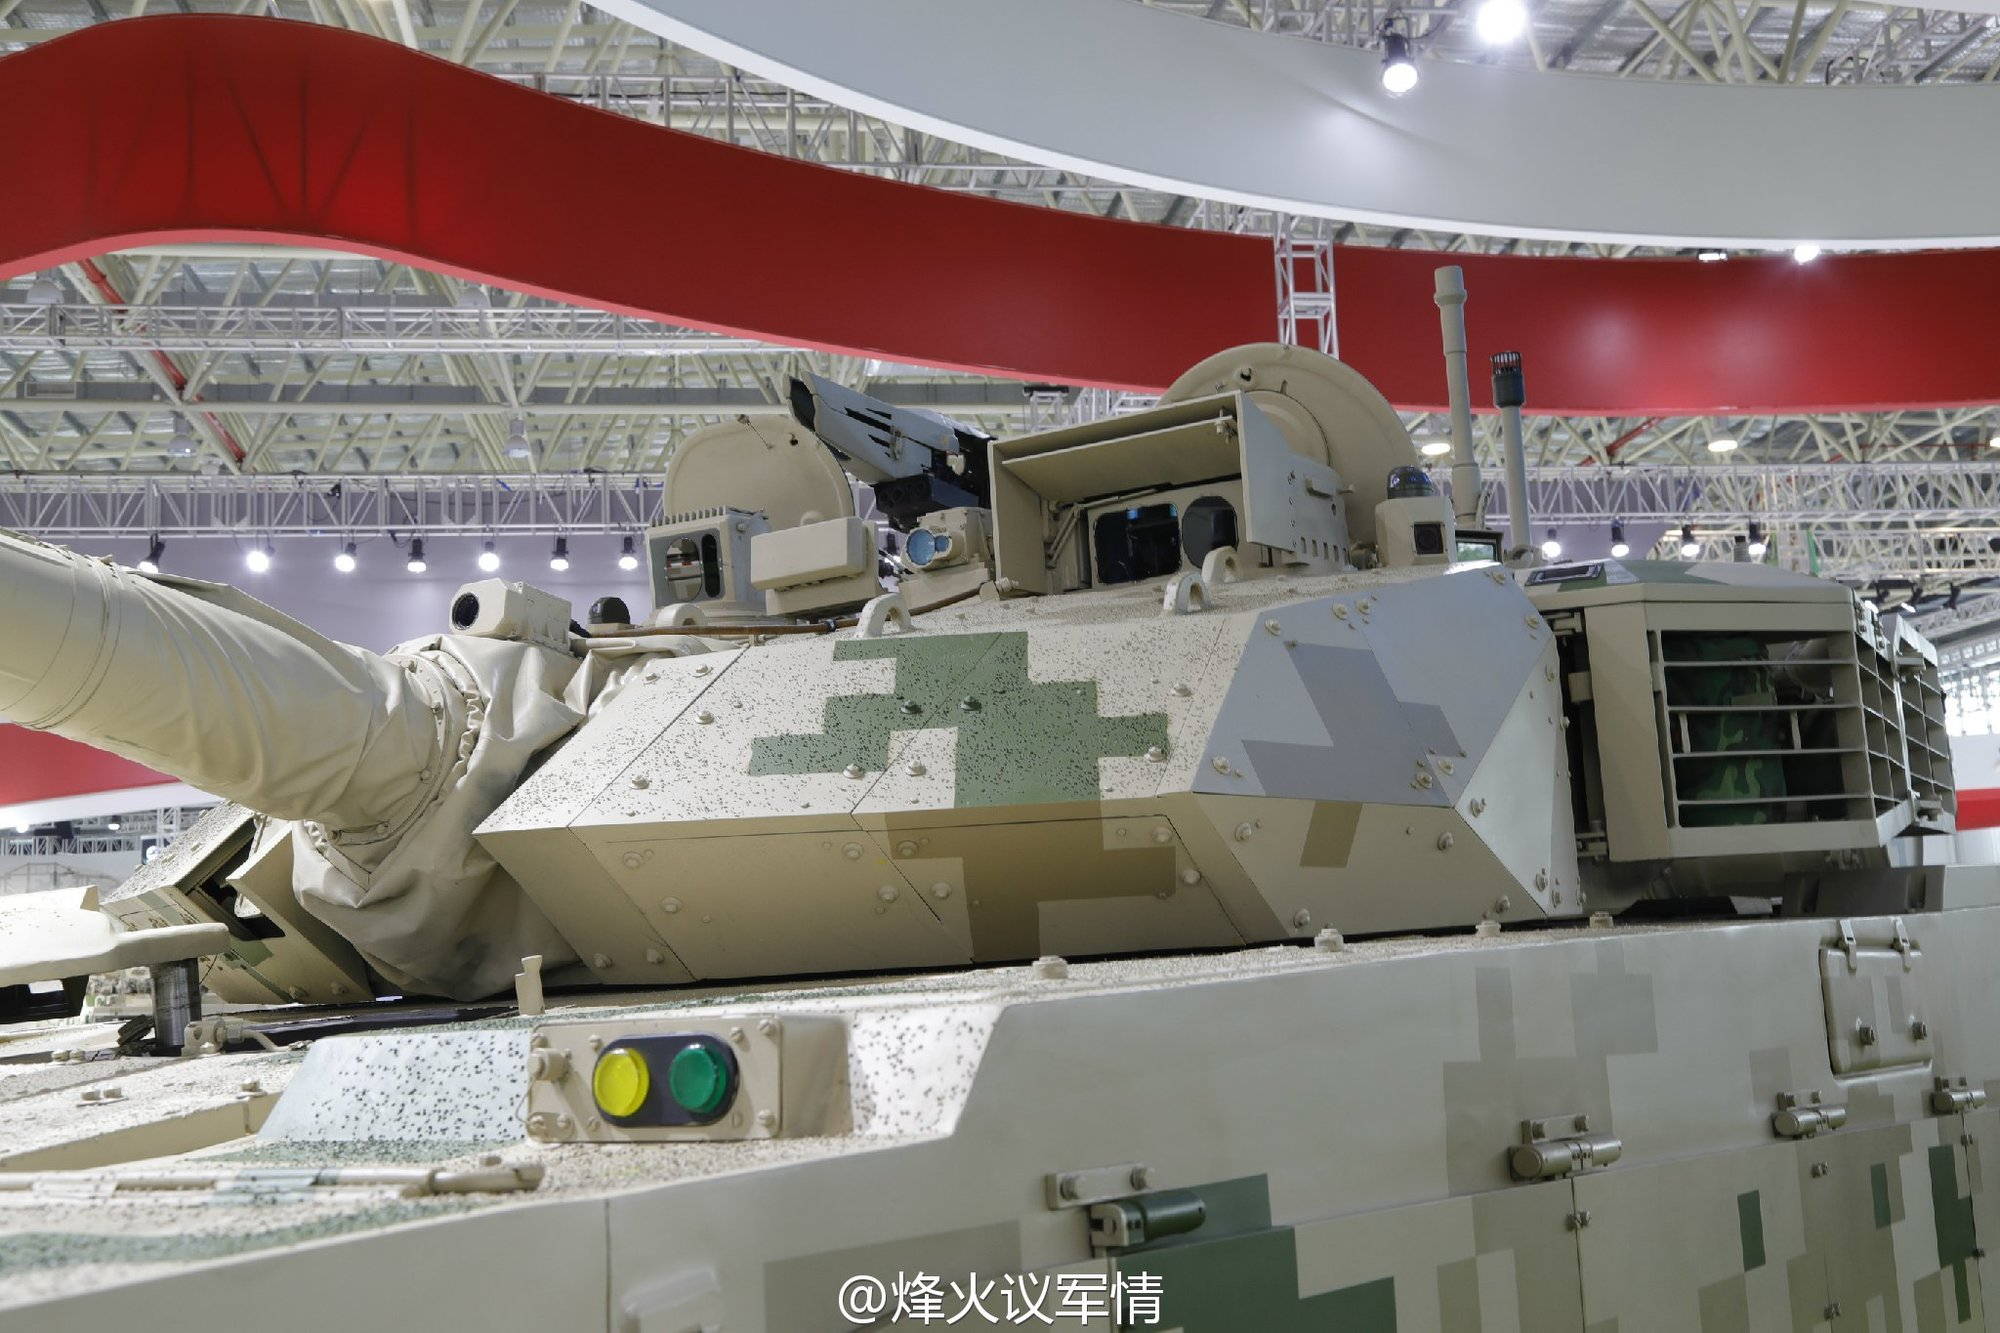 Chinese People's Liberation Army (PLA): Photos and Videos - Page 3 30081320484_9694555847_o_d